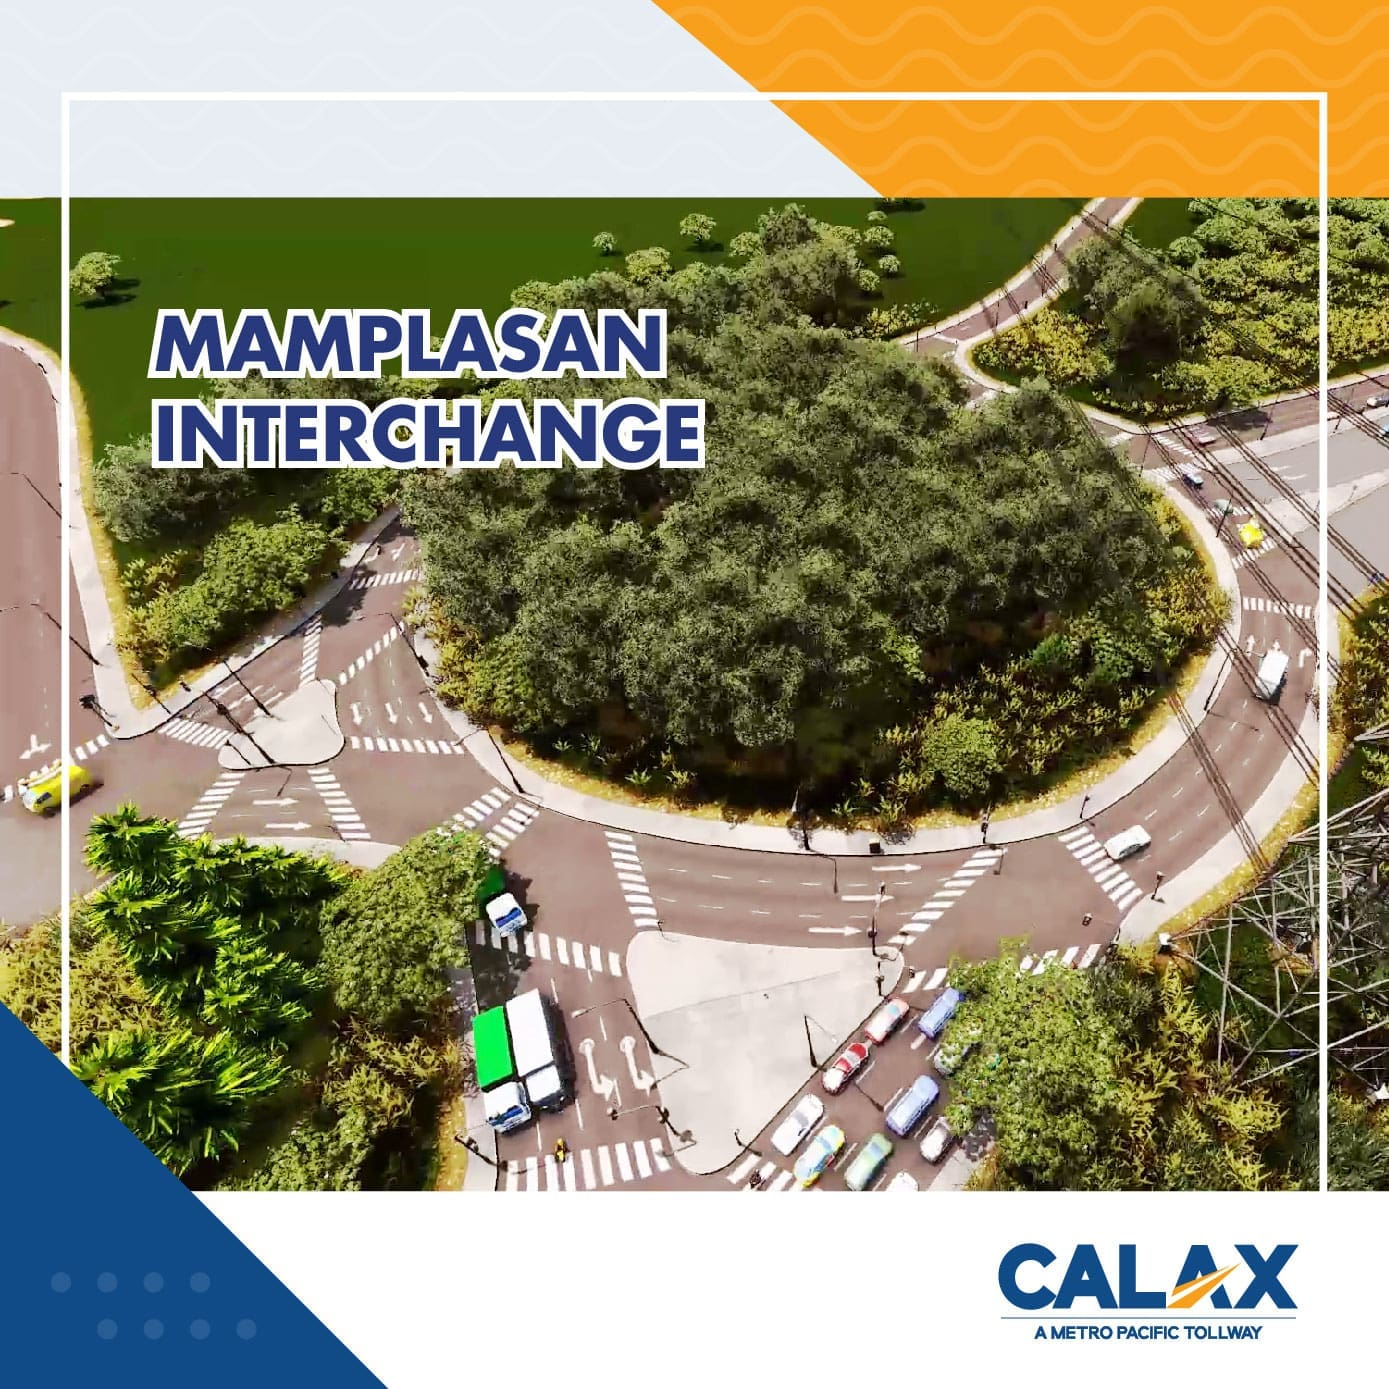 CALAX to Open 10-Km Stretch by End-October